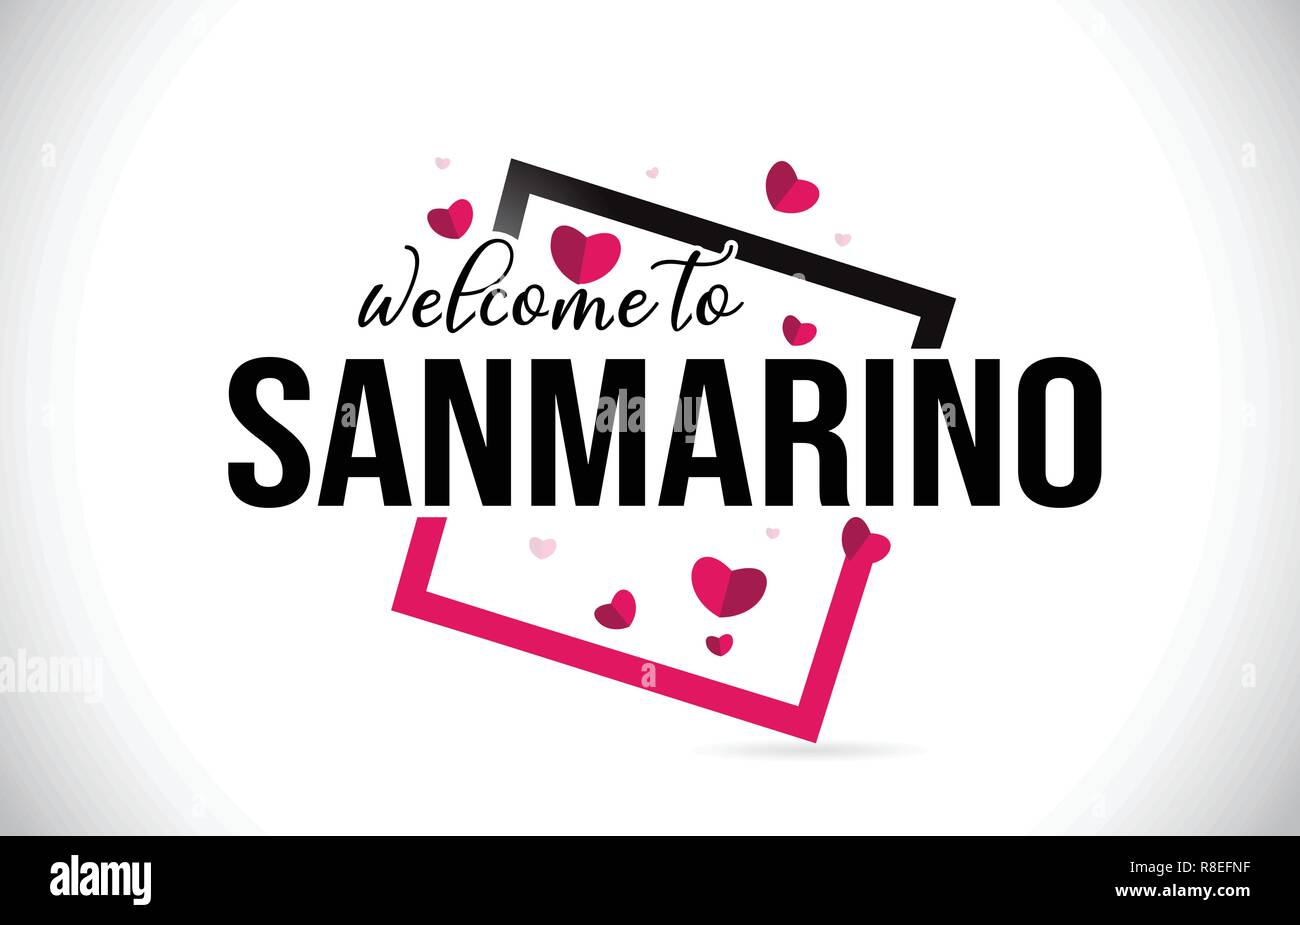 SanMarino Welcome To Word Text with Handwritten Font and  Red Hearts Square Design Illustration Vector. Stock Vector